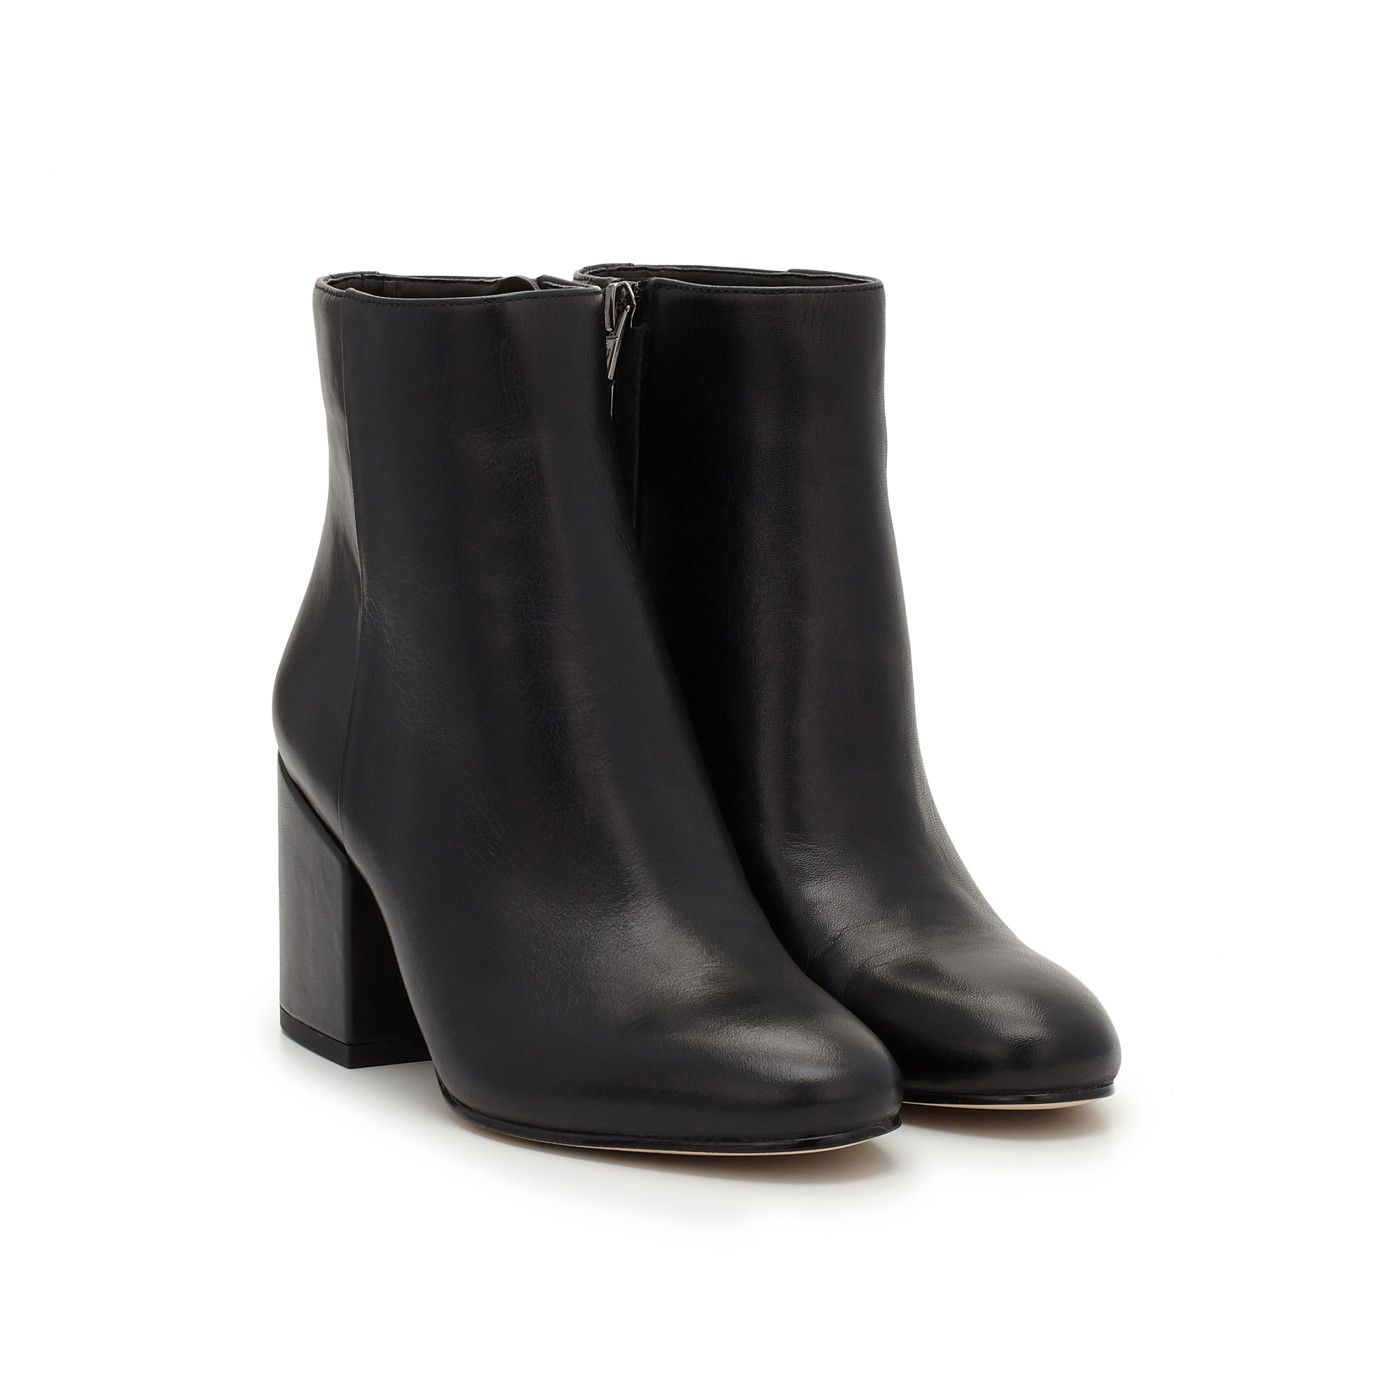 8d234265fd70 Taye Heeled Ankle Bootie by Sam Edelman - Black Leather - View 1 ...